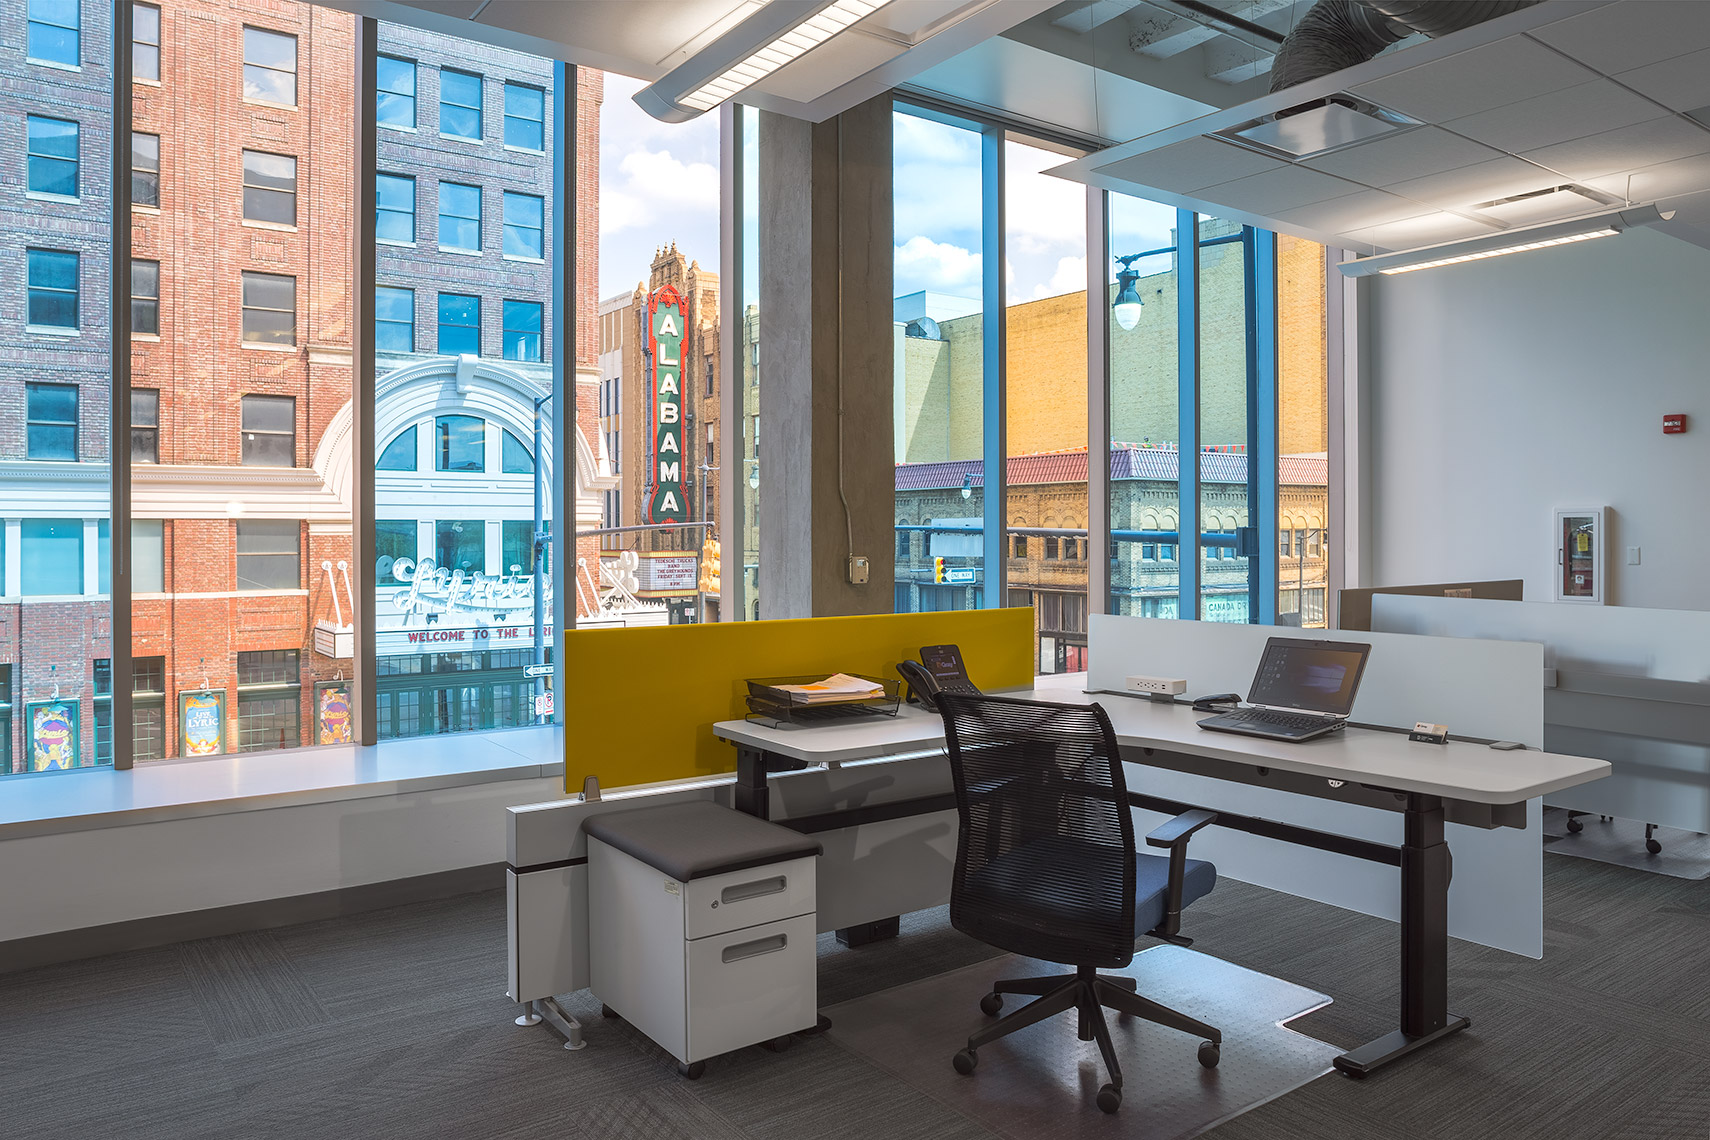 Workspace with city view at a Corporate Office Renovation, Birmingham, AL